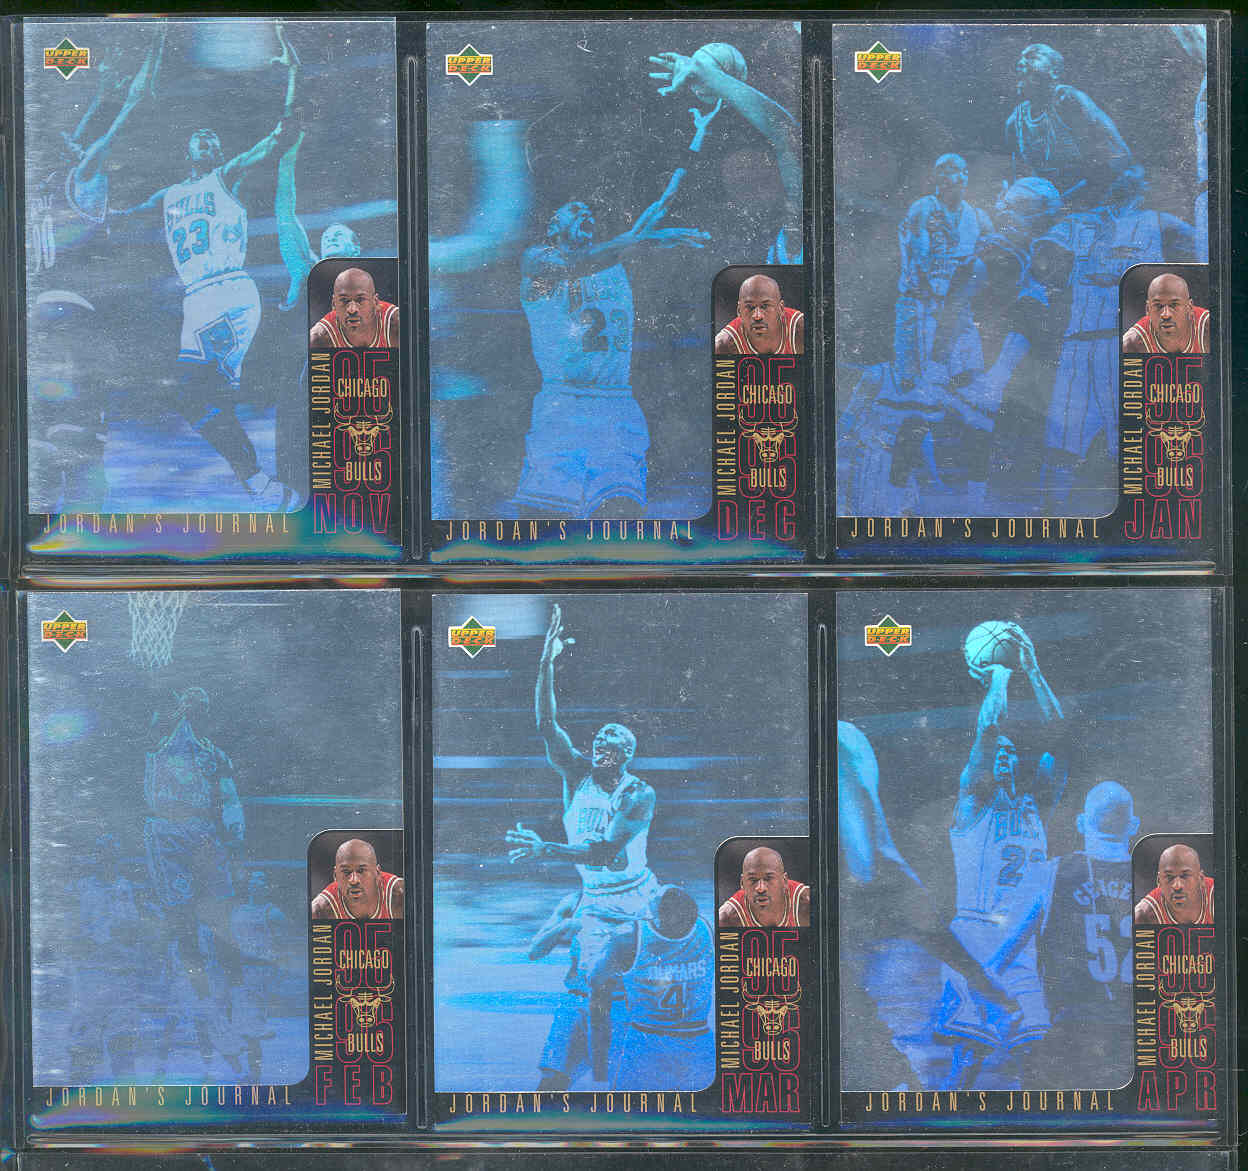 1996-97 Collector's Choice Int'l German Jordan's Journal Complete Set Beckett Value $75